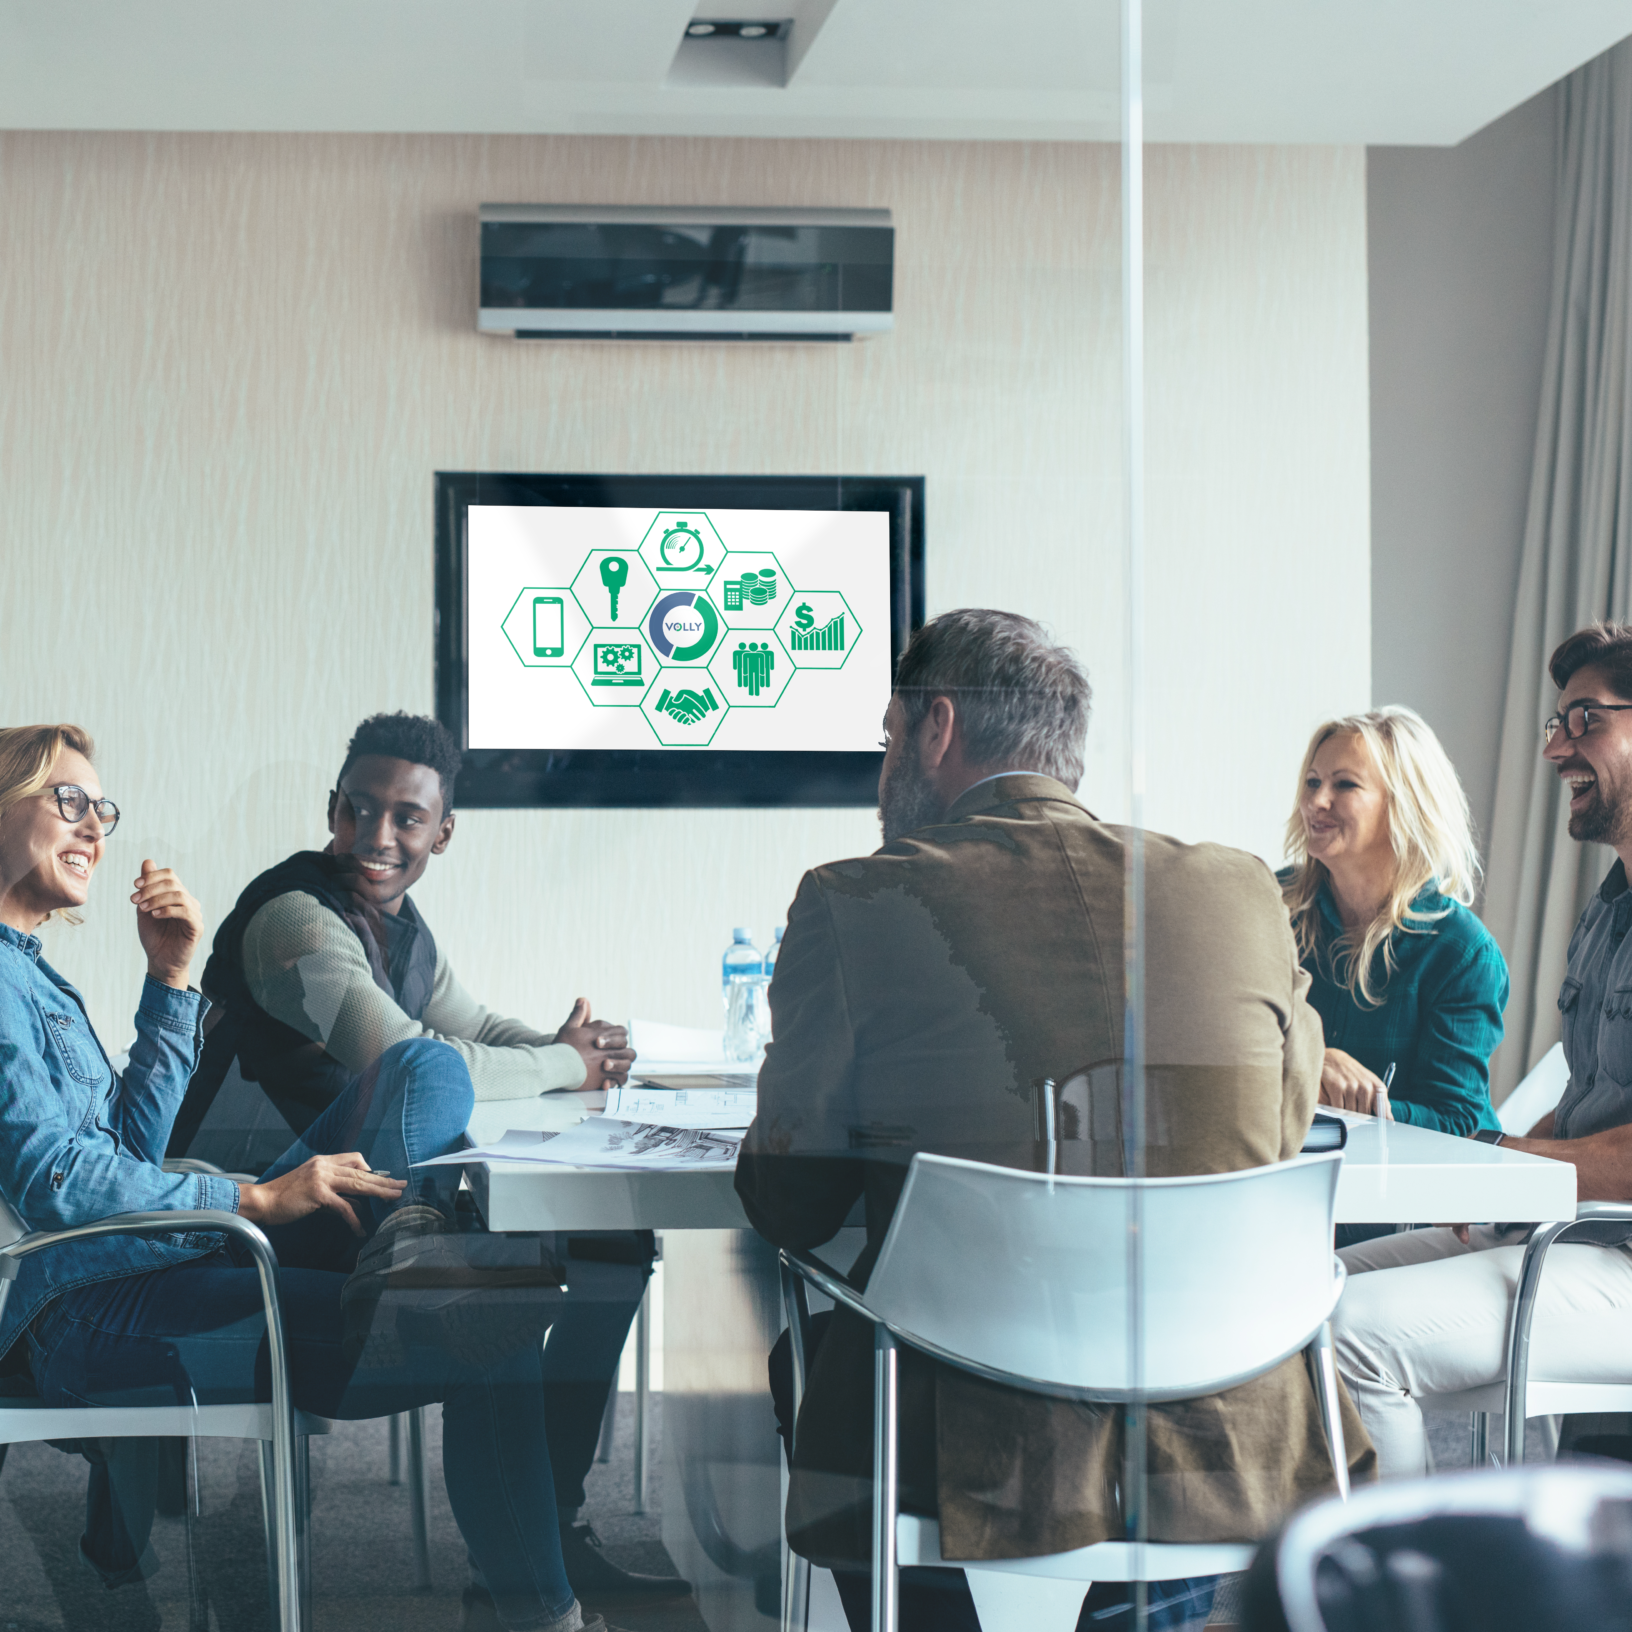 A group of people discussing in a meeting, a screen showing the concept on Wholesale with the Volly logo